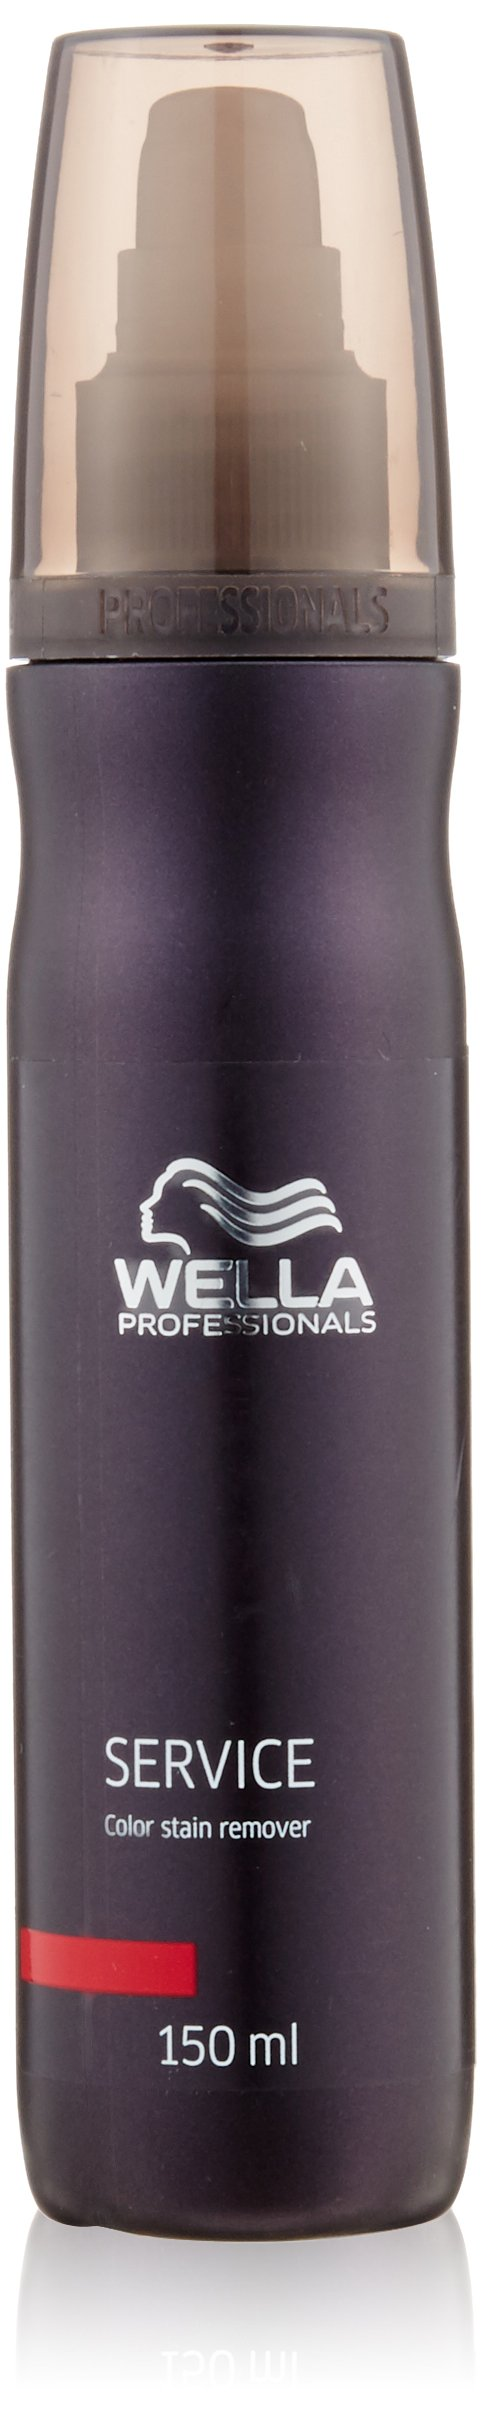 Wella Service Color Stain Remover, 5 Ounce